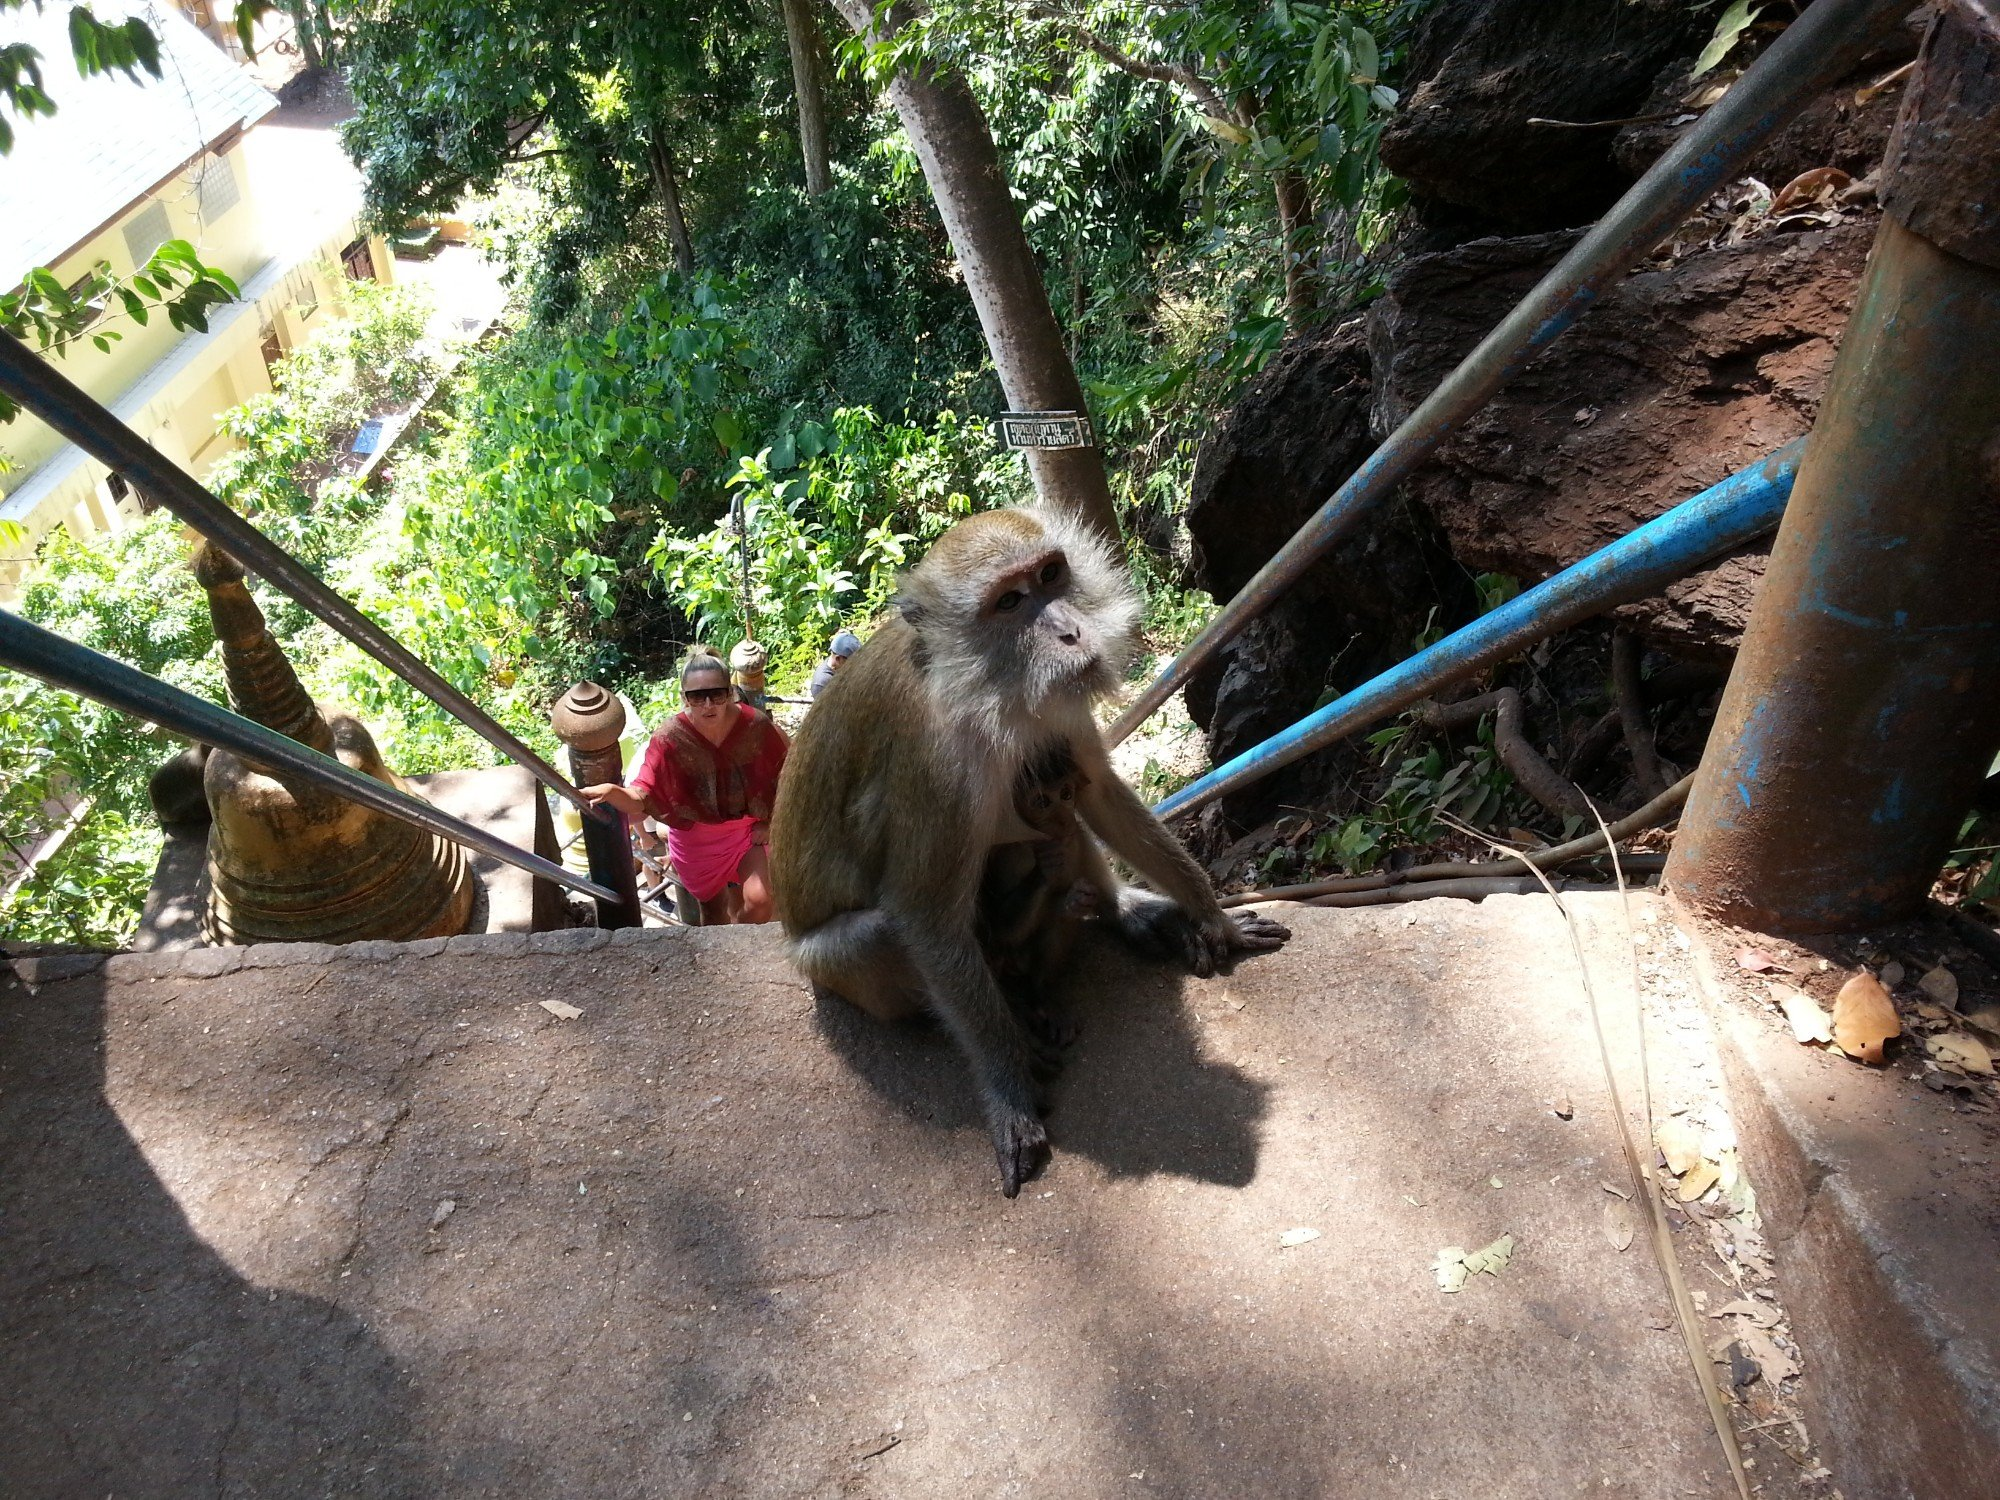 Monkeys on the steps up to the temple at Wat Tham Suea